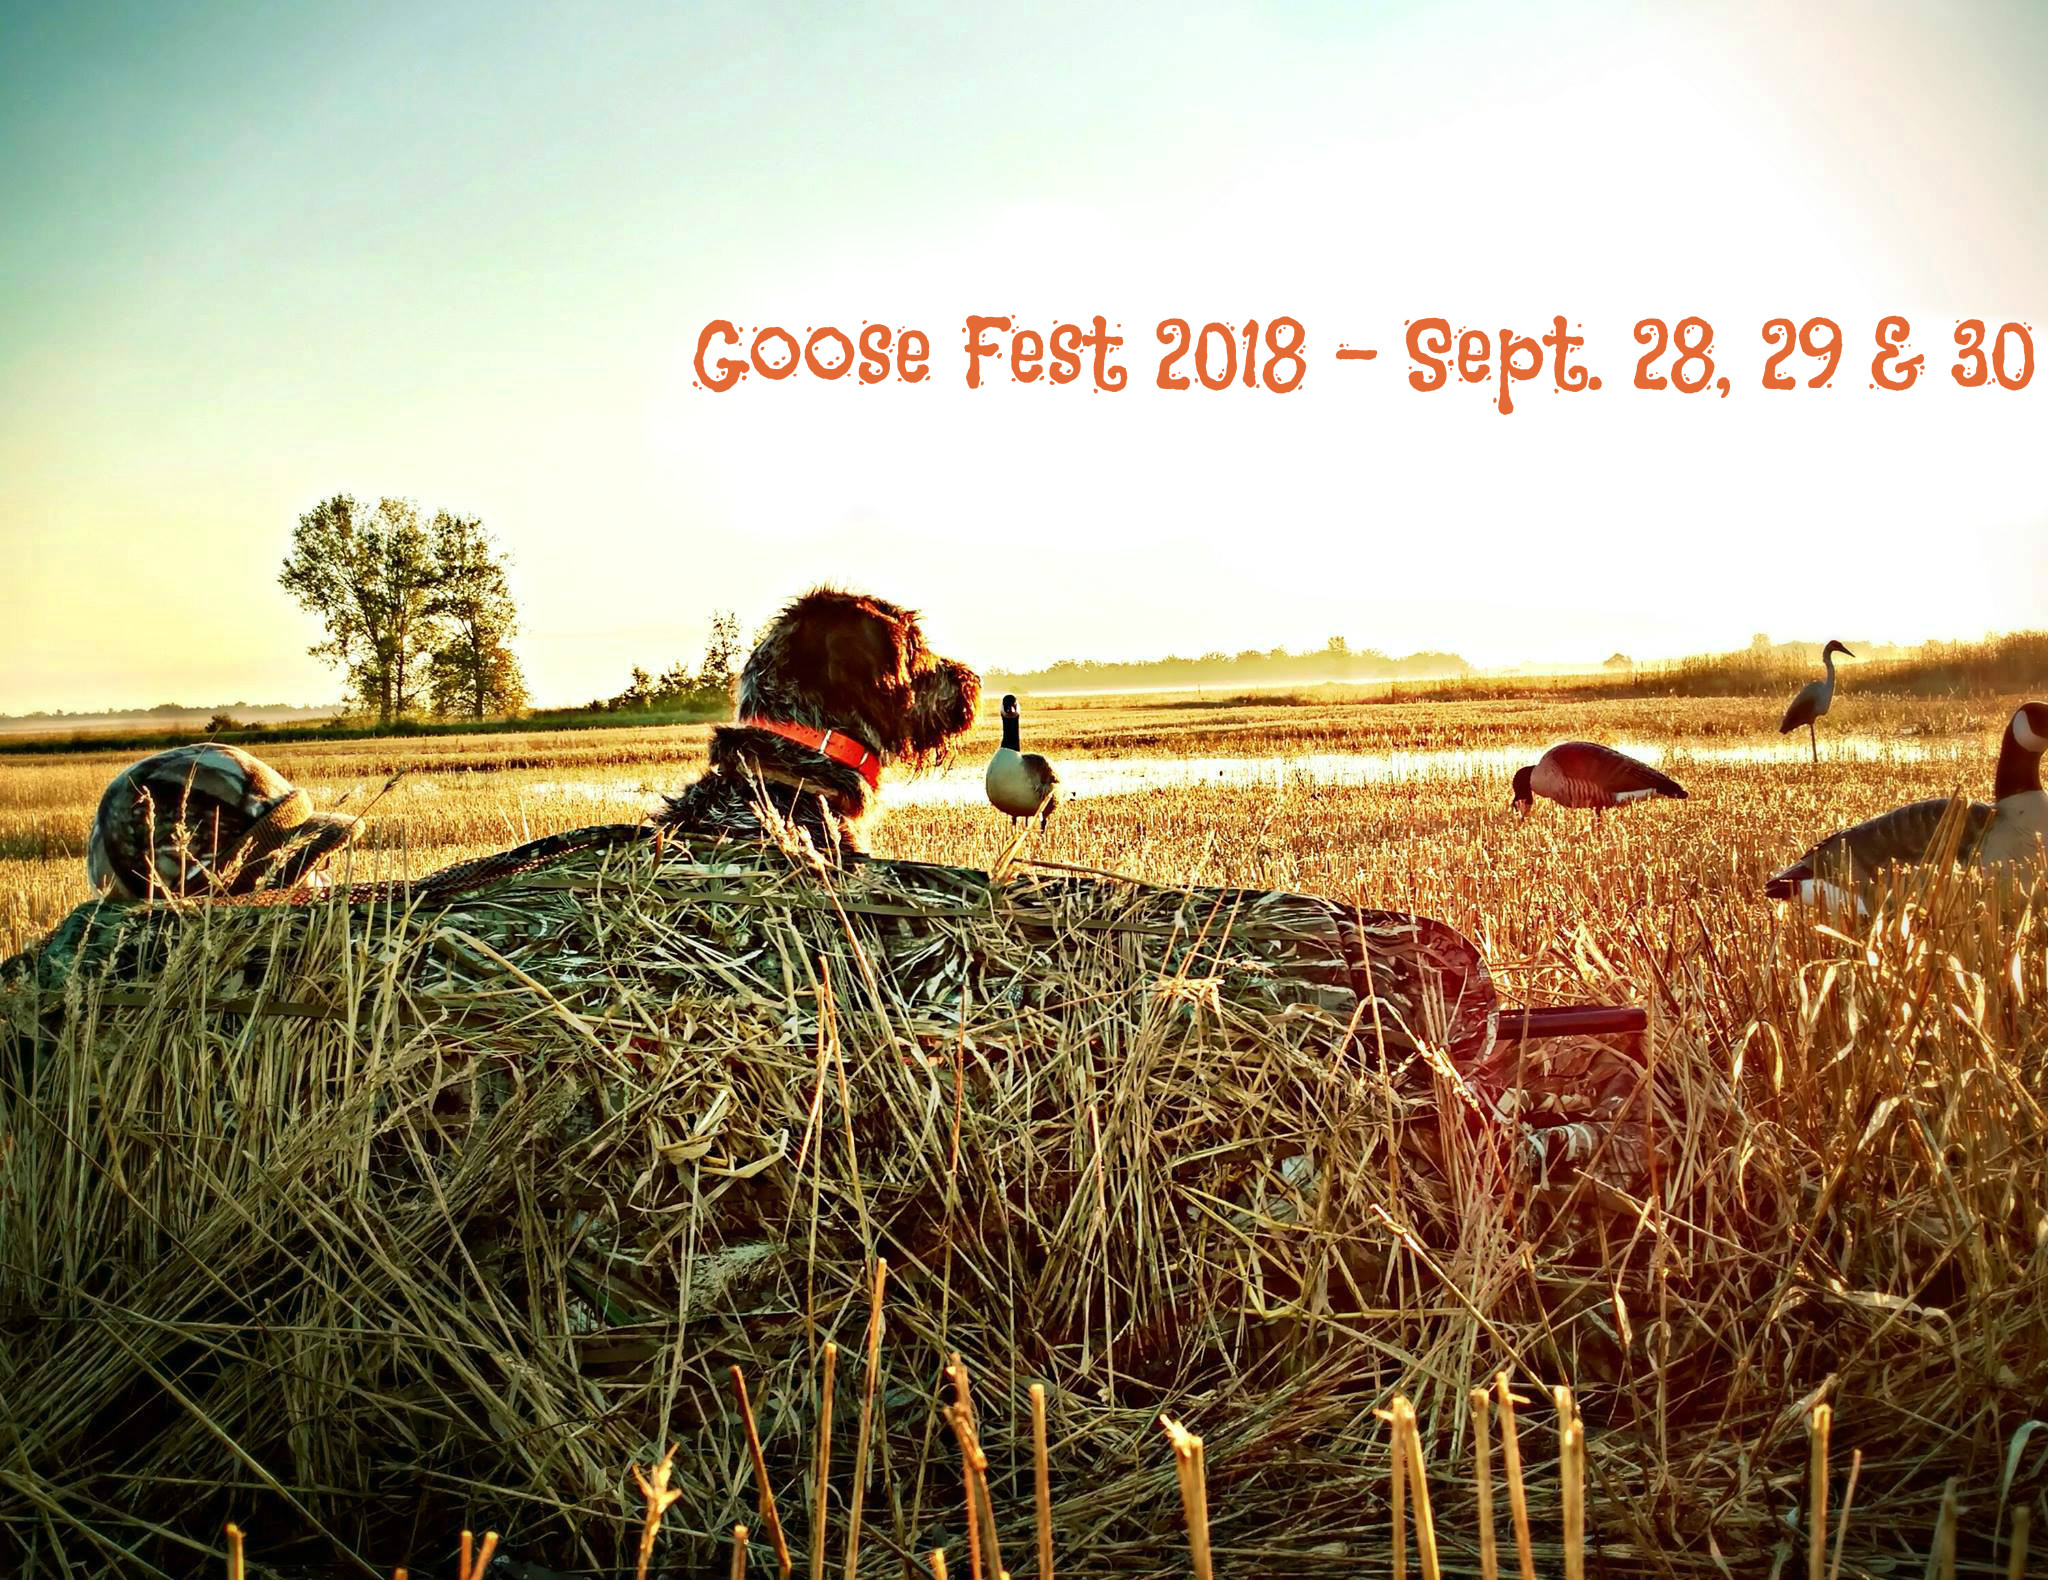 Book Signing @ Goose Festival in Middle River, MN